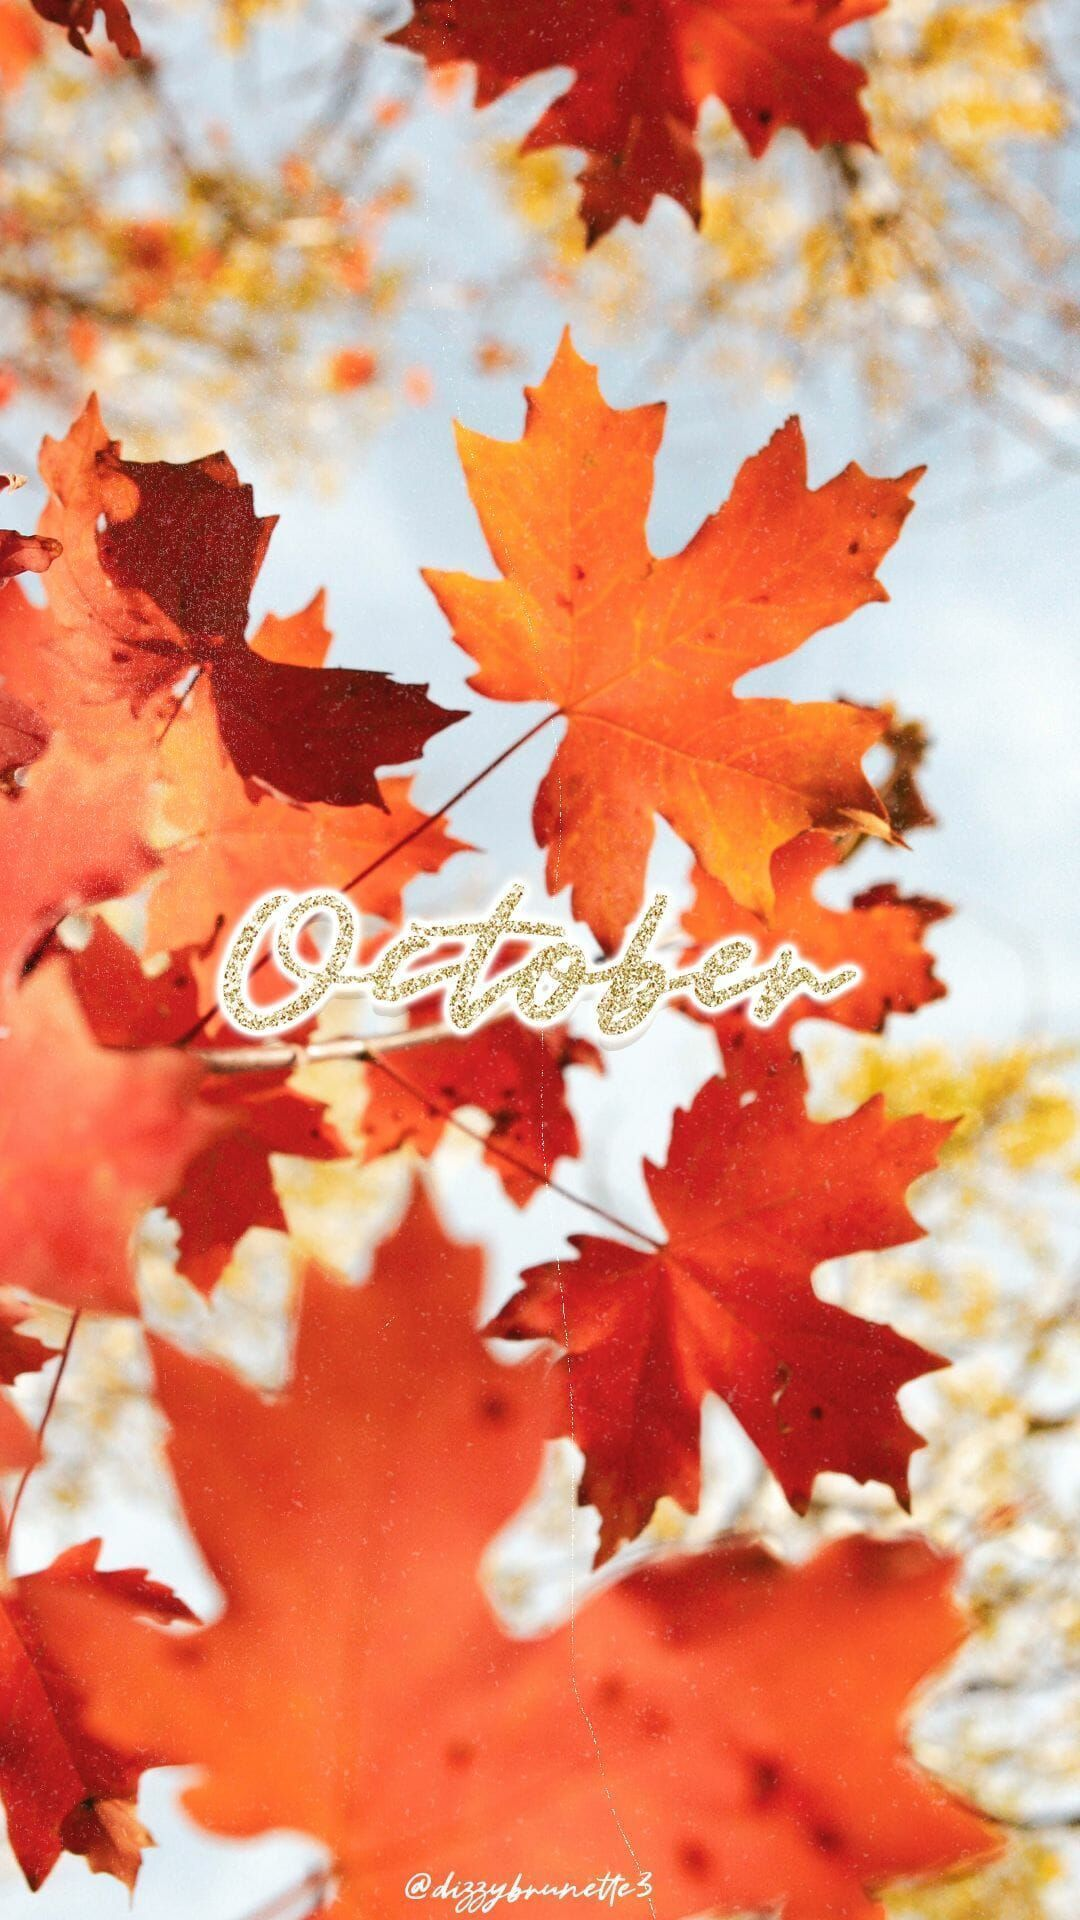 31 Free Amazing Fall Iphone Wallpaper Backgrounds For Fall Aesthetic Image C Dizzy Brunette 3 Cute Aut In 2020 Fall Wallpaper October Wallpaper Cute Fall Wallpaper